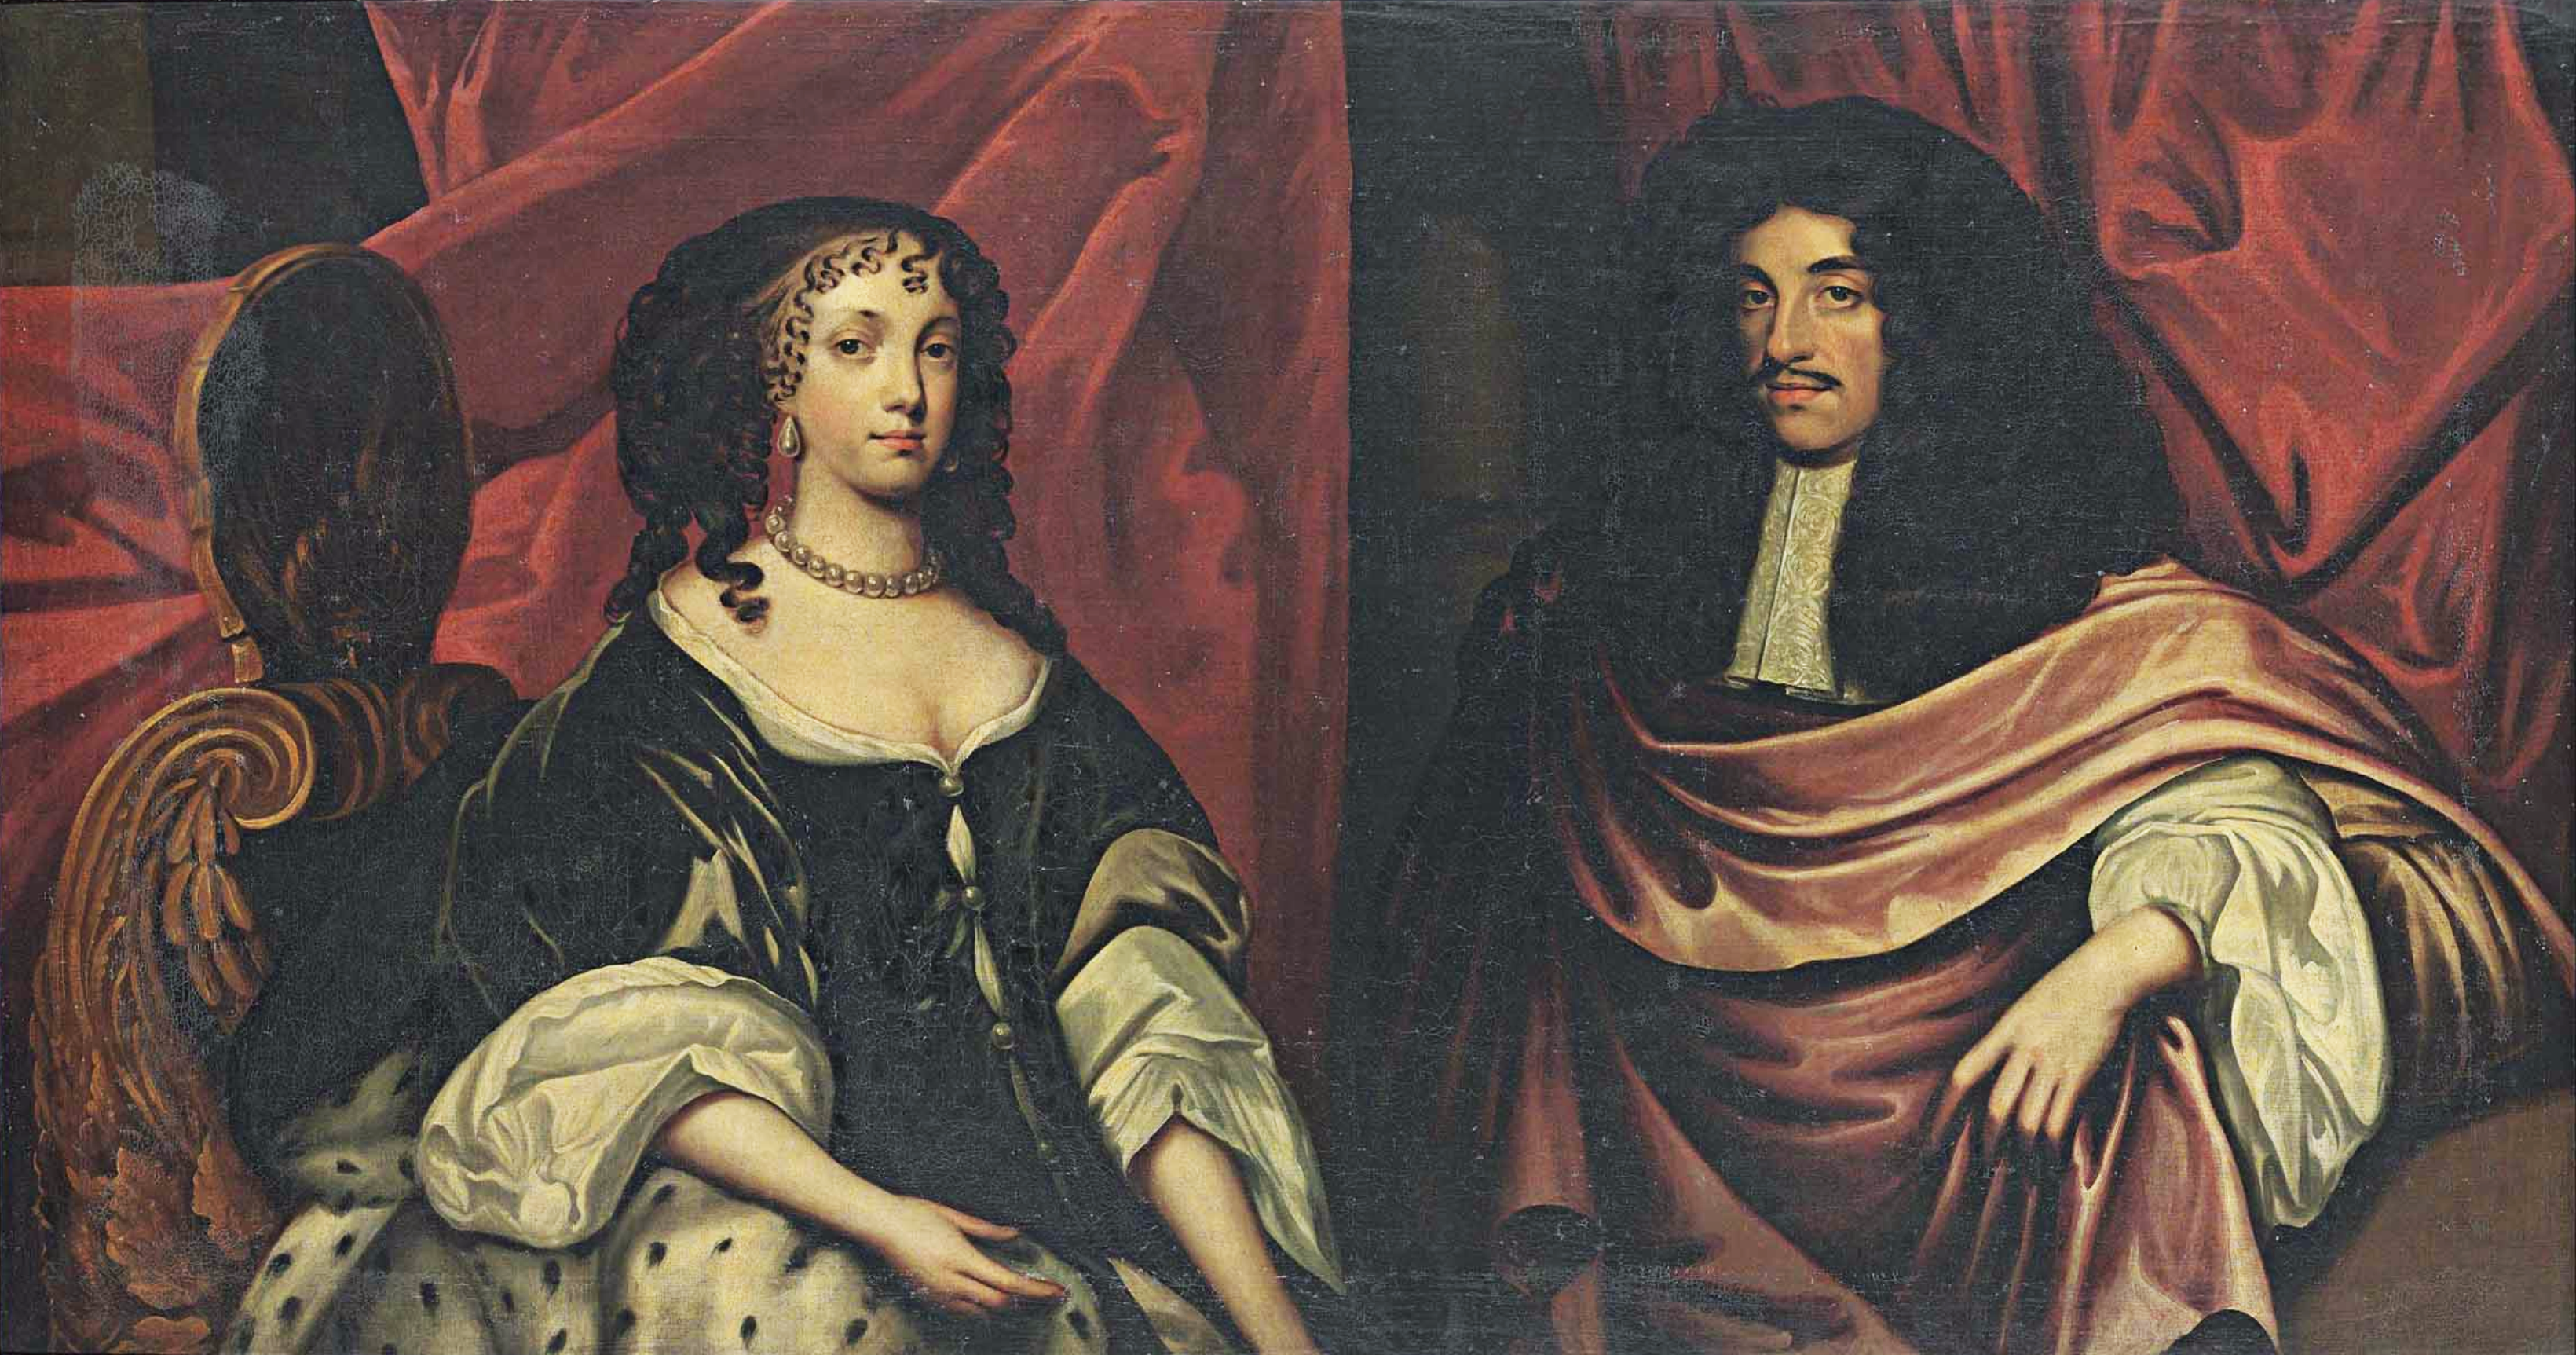 File:English School - King Charles II and Catherine of Braganza.png -  Wikimedia Commons